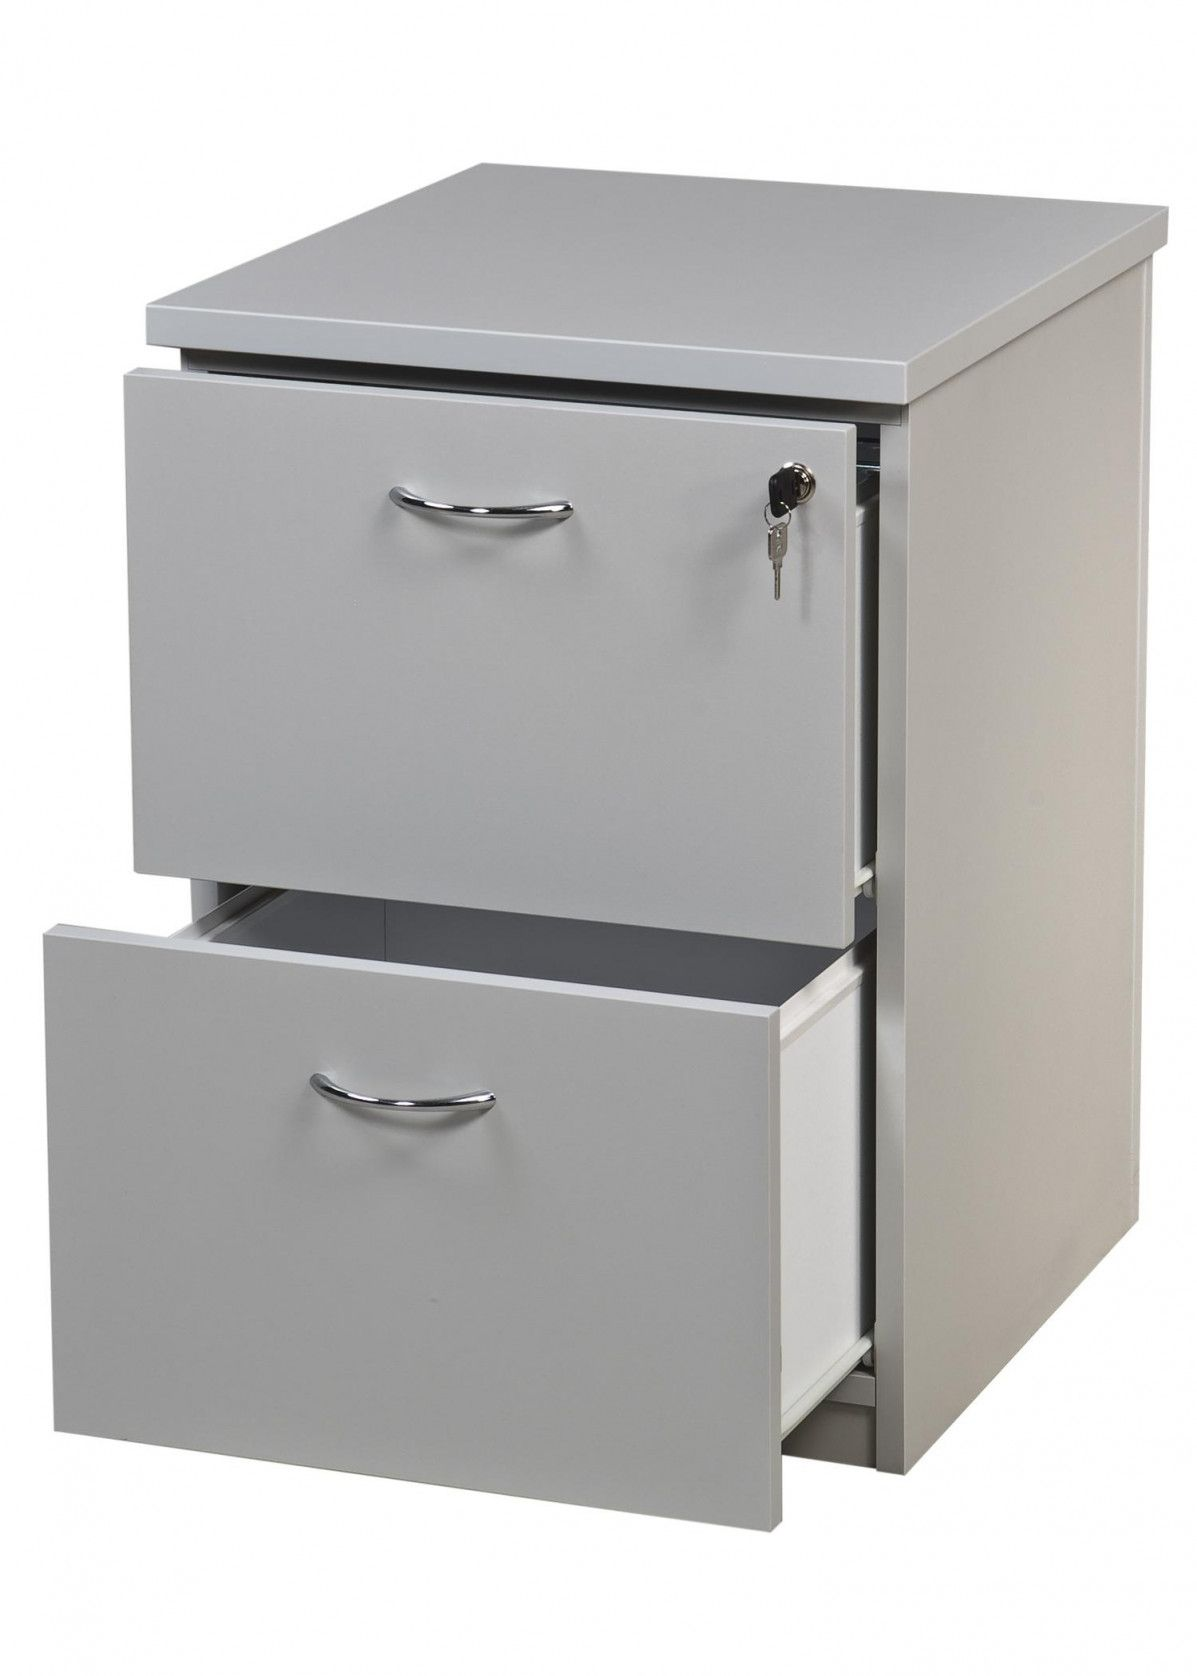 Small Filing Cabinet Pin By Rahayu12 On Interior Analogi Home Office Furniture Desk